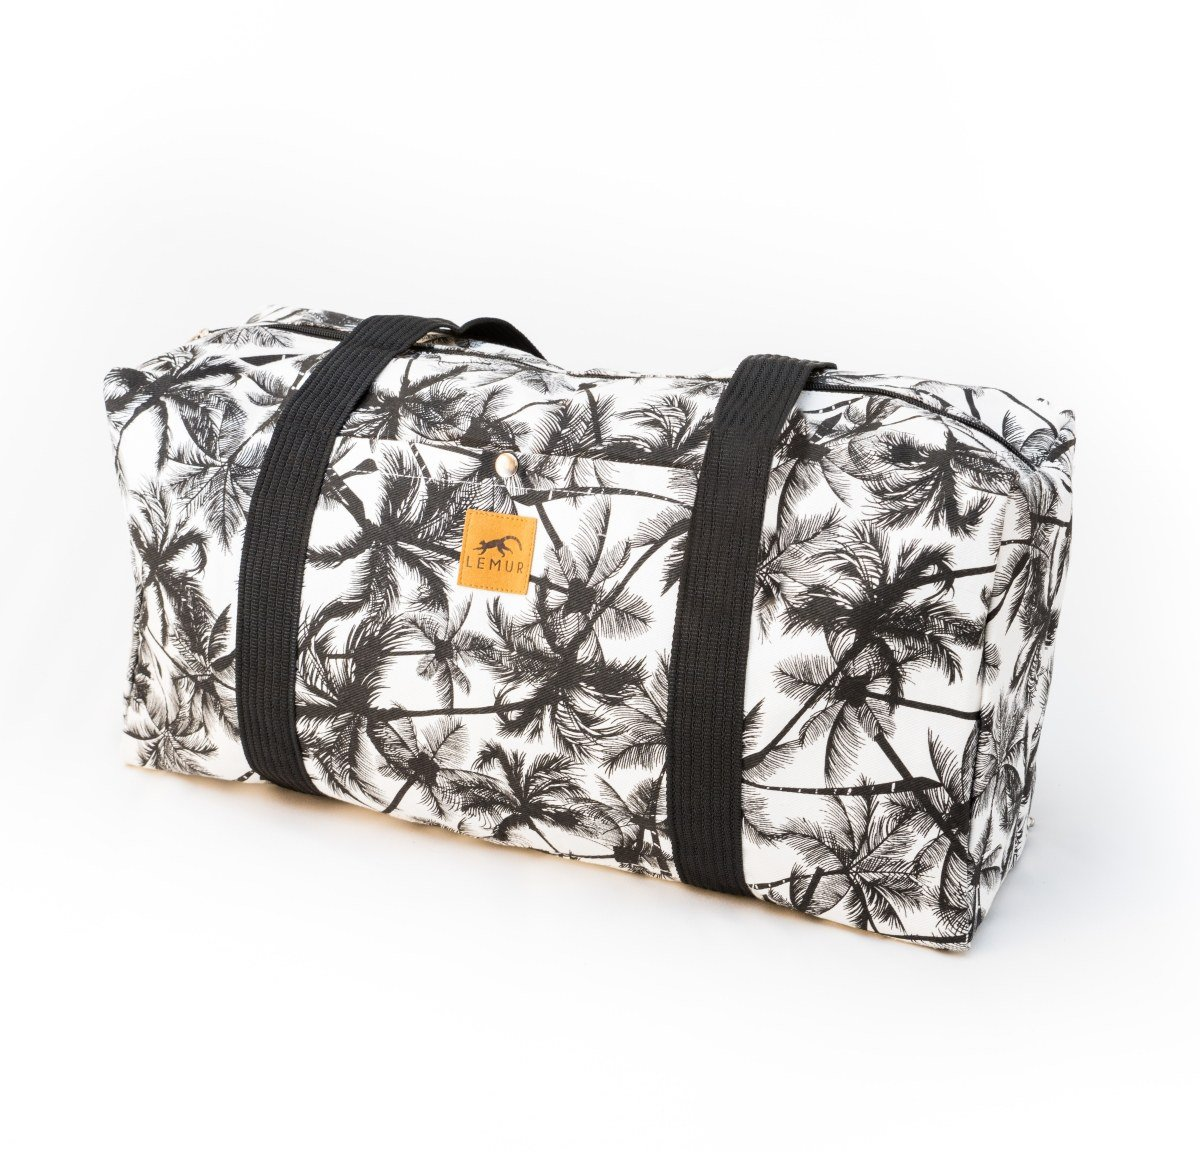 Canvas Duffel Bag - 20 Liter Gym Tote, Foldable Overnight Travel Weekend Luggage by Lemur Bags (Tropical Palm)